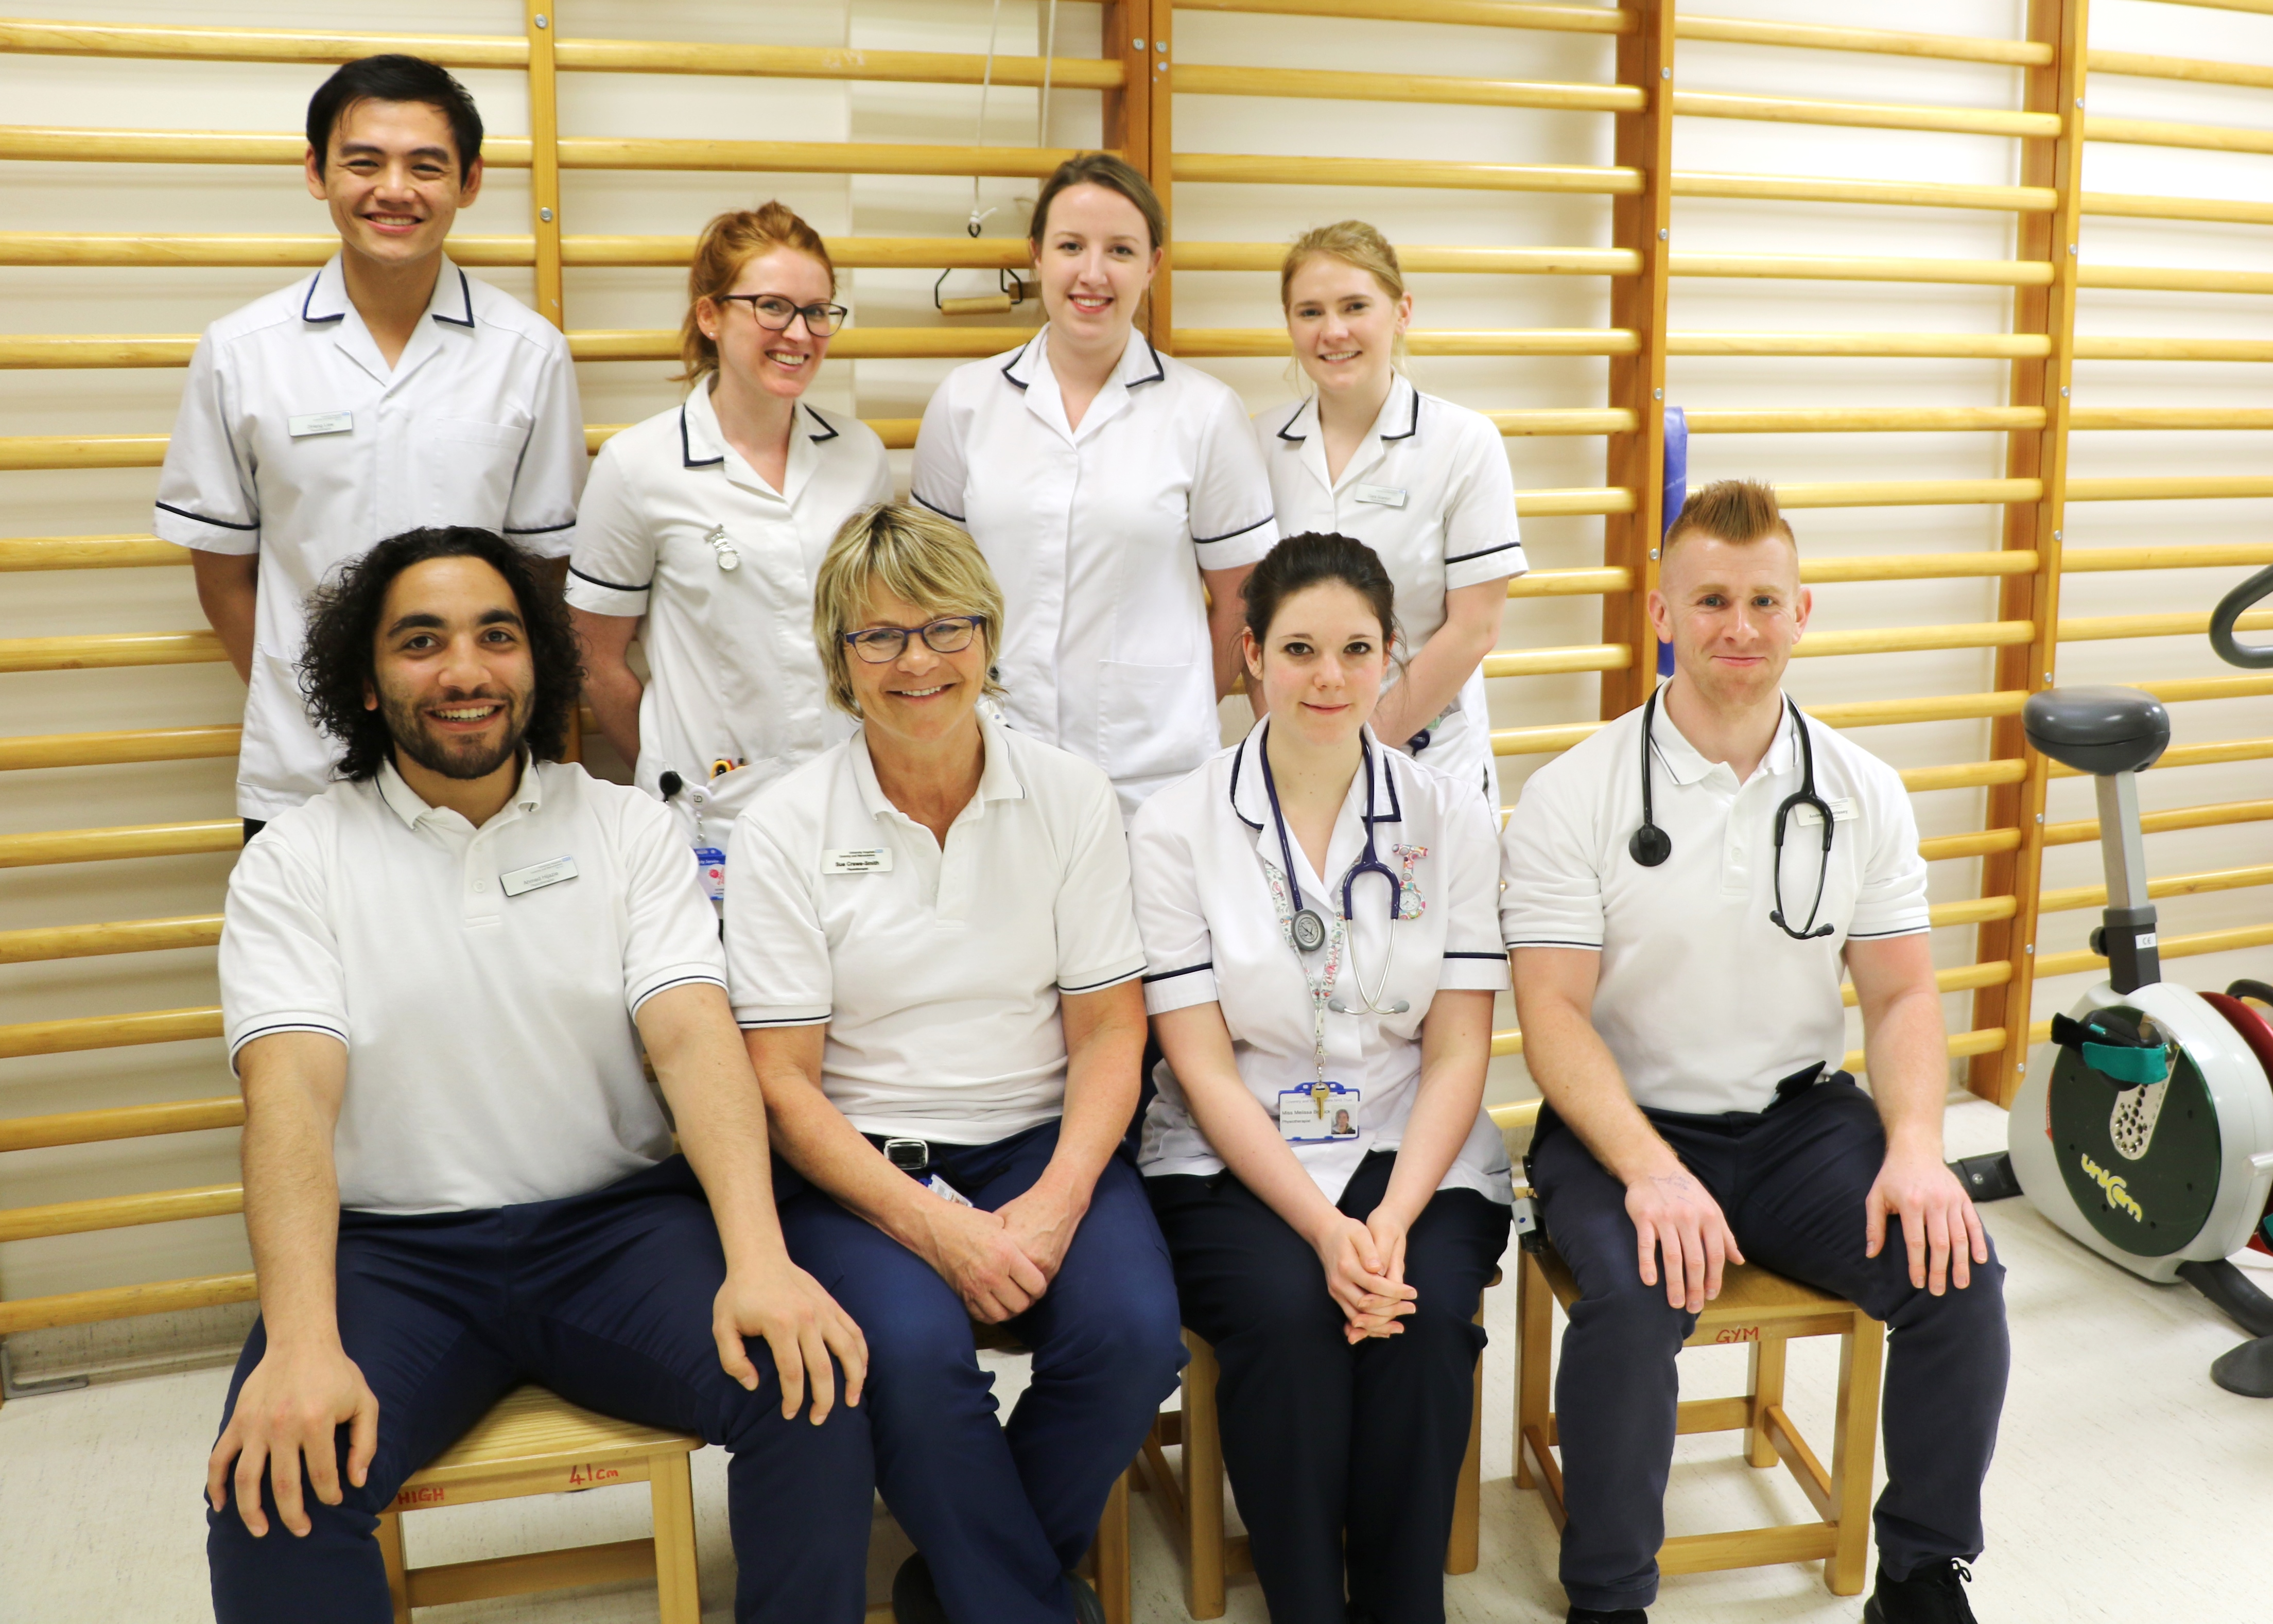 Physiotherapists volunteering for London Marathon